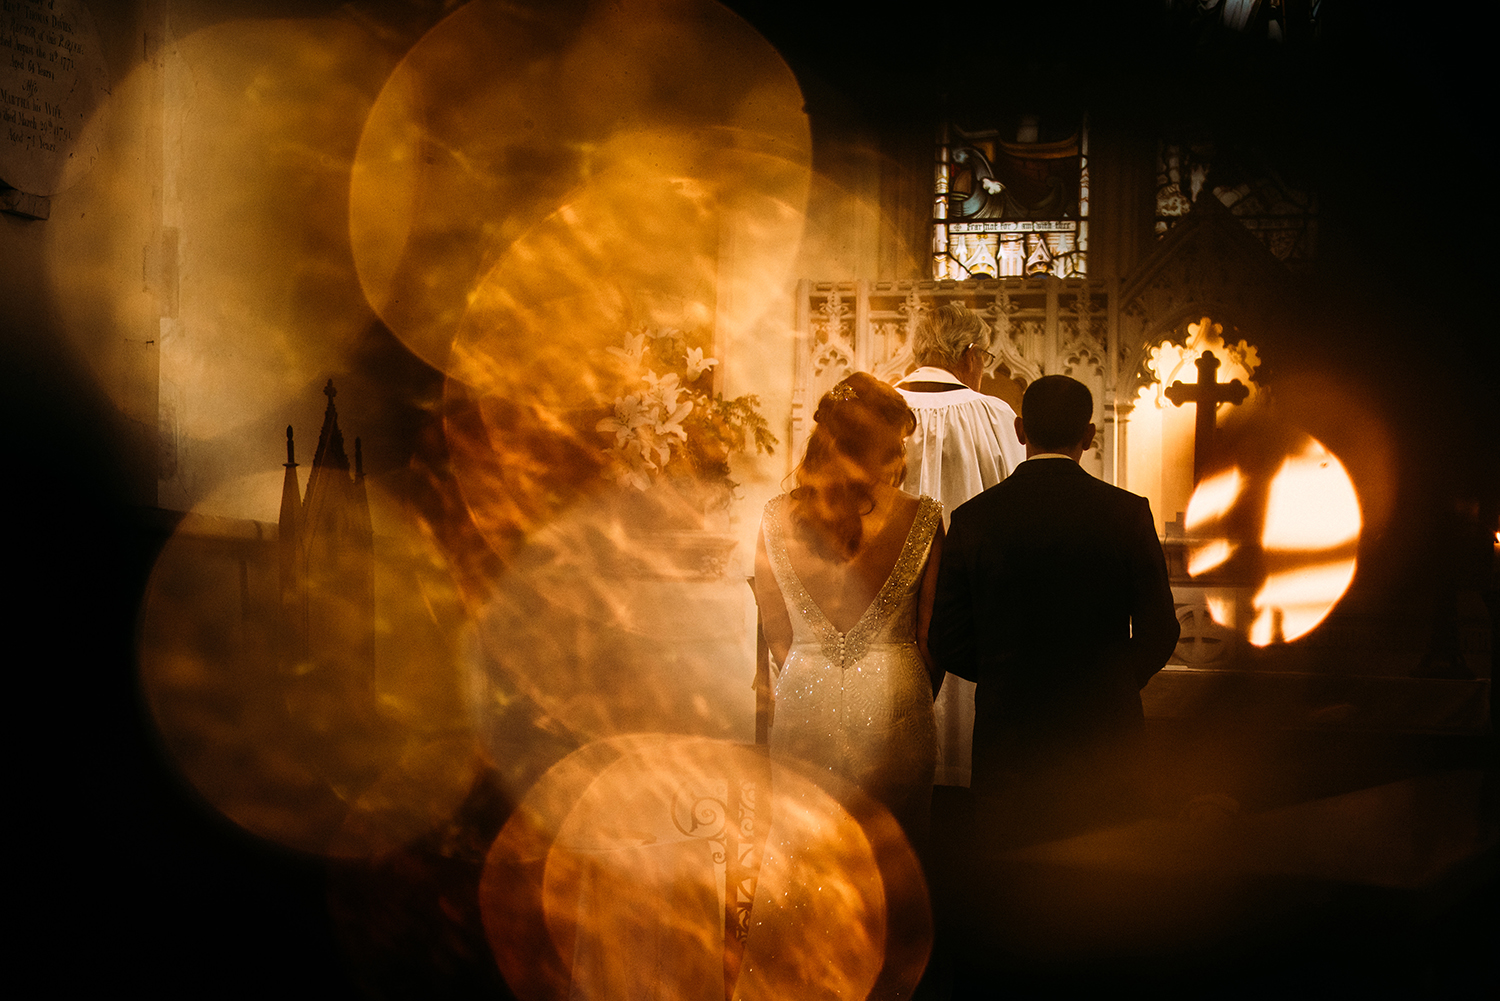 Bokeh shot of bride and groom at the alter though Christmas tree lights